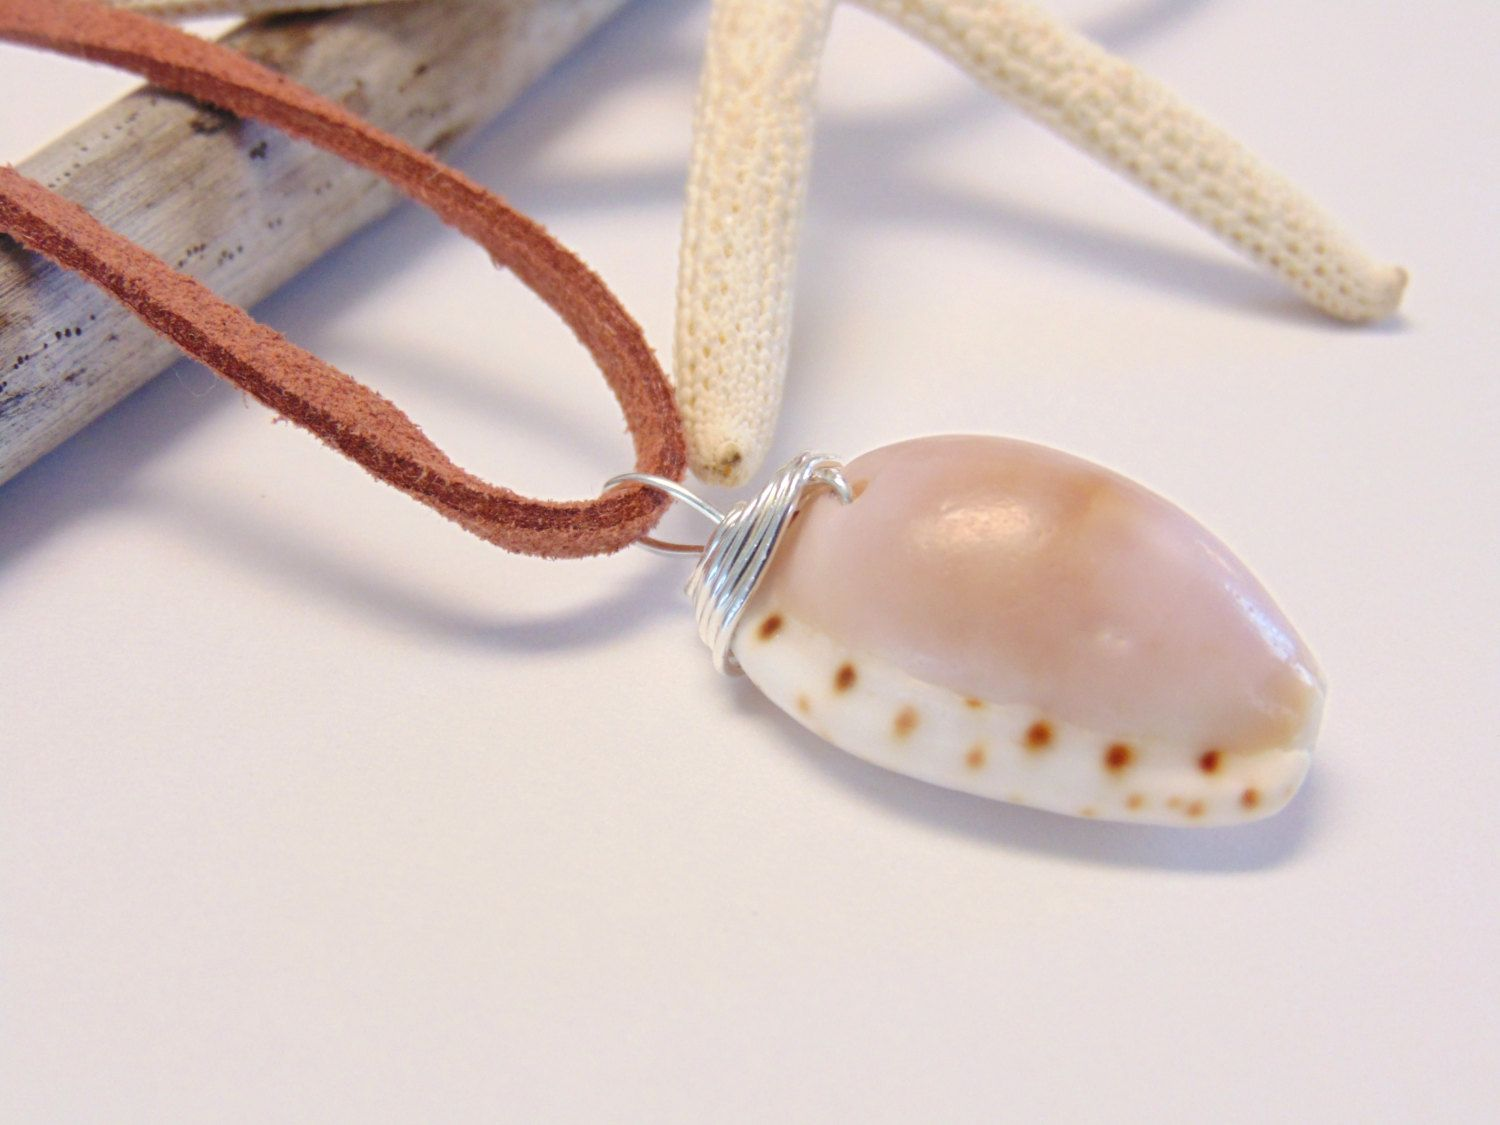 Cowrie Shell Necklace - Wire Wrapped - Pink Cowrie - Hawaiian Shell Jewelry - Suede - Long Necklace by AnabellasJewelry on Etsy